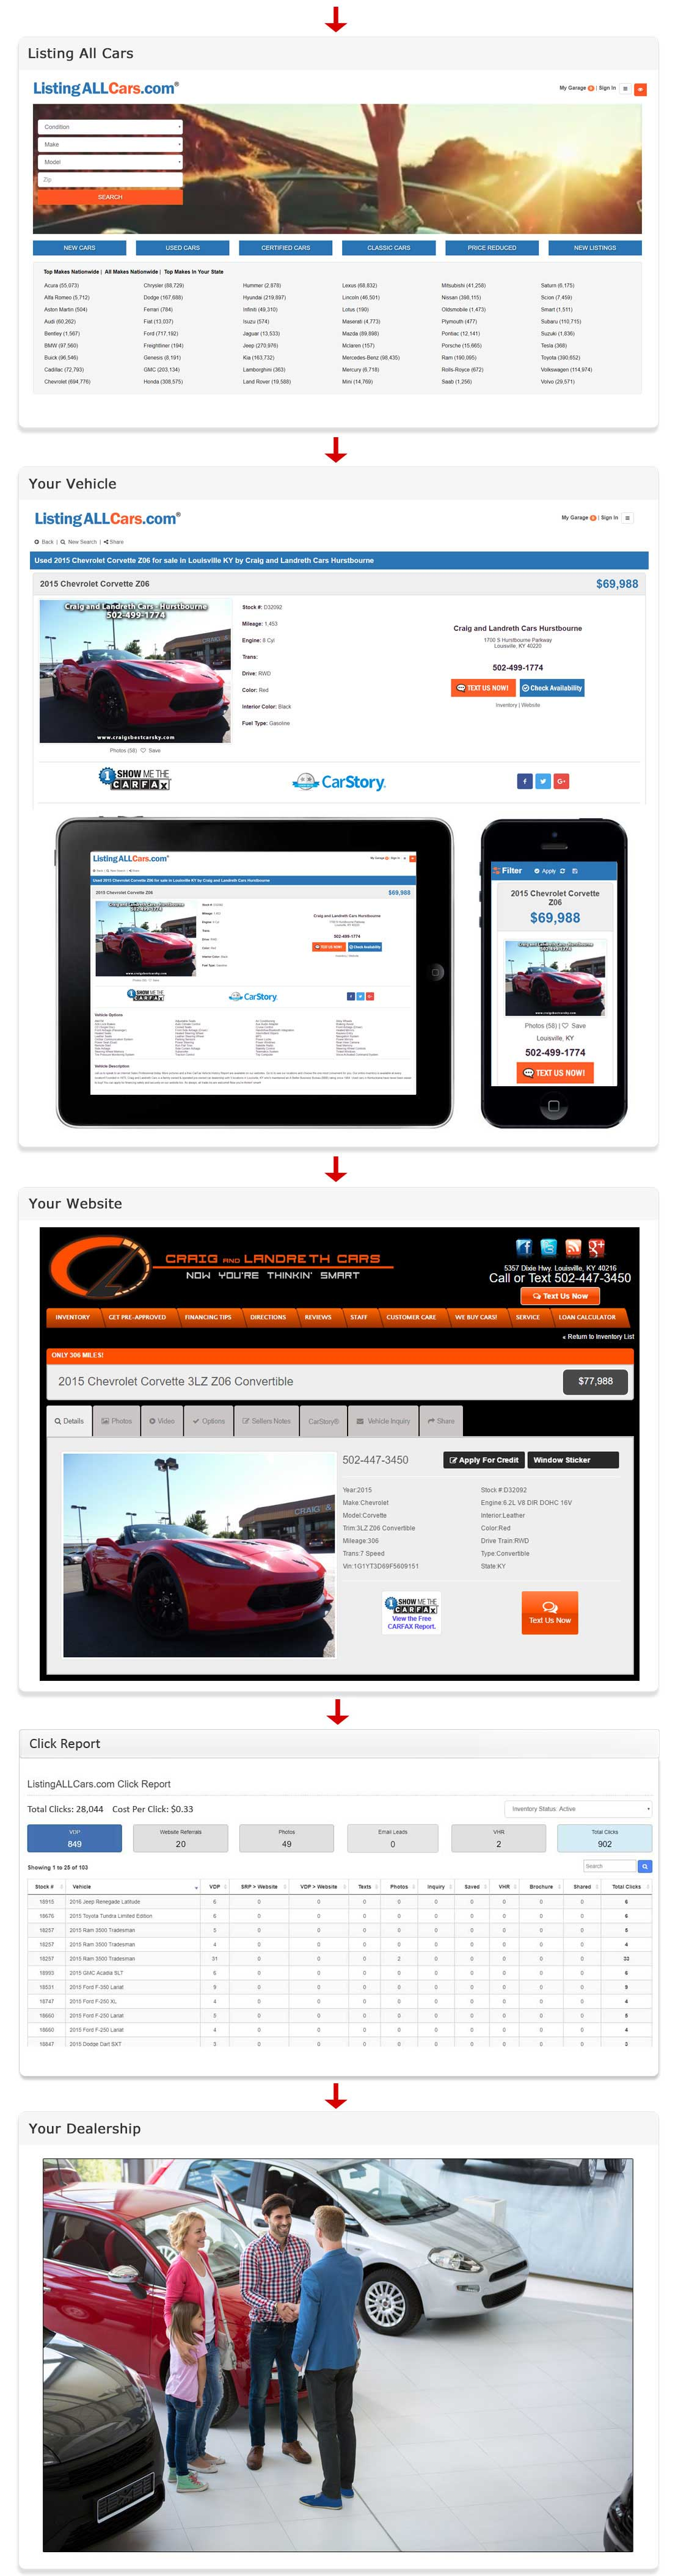 Listing All Cars >> Listing All Cars Lead Generation For Car Dealers